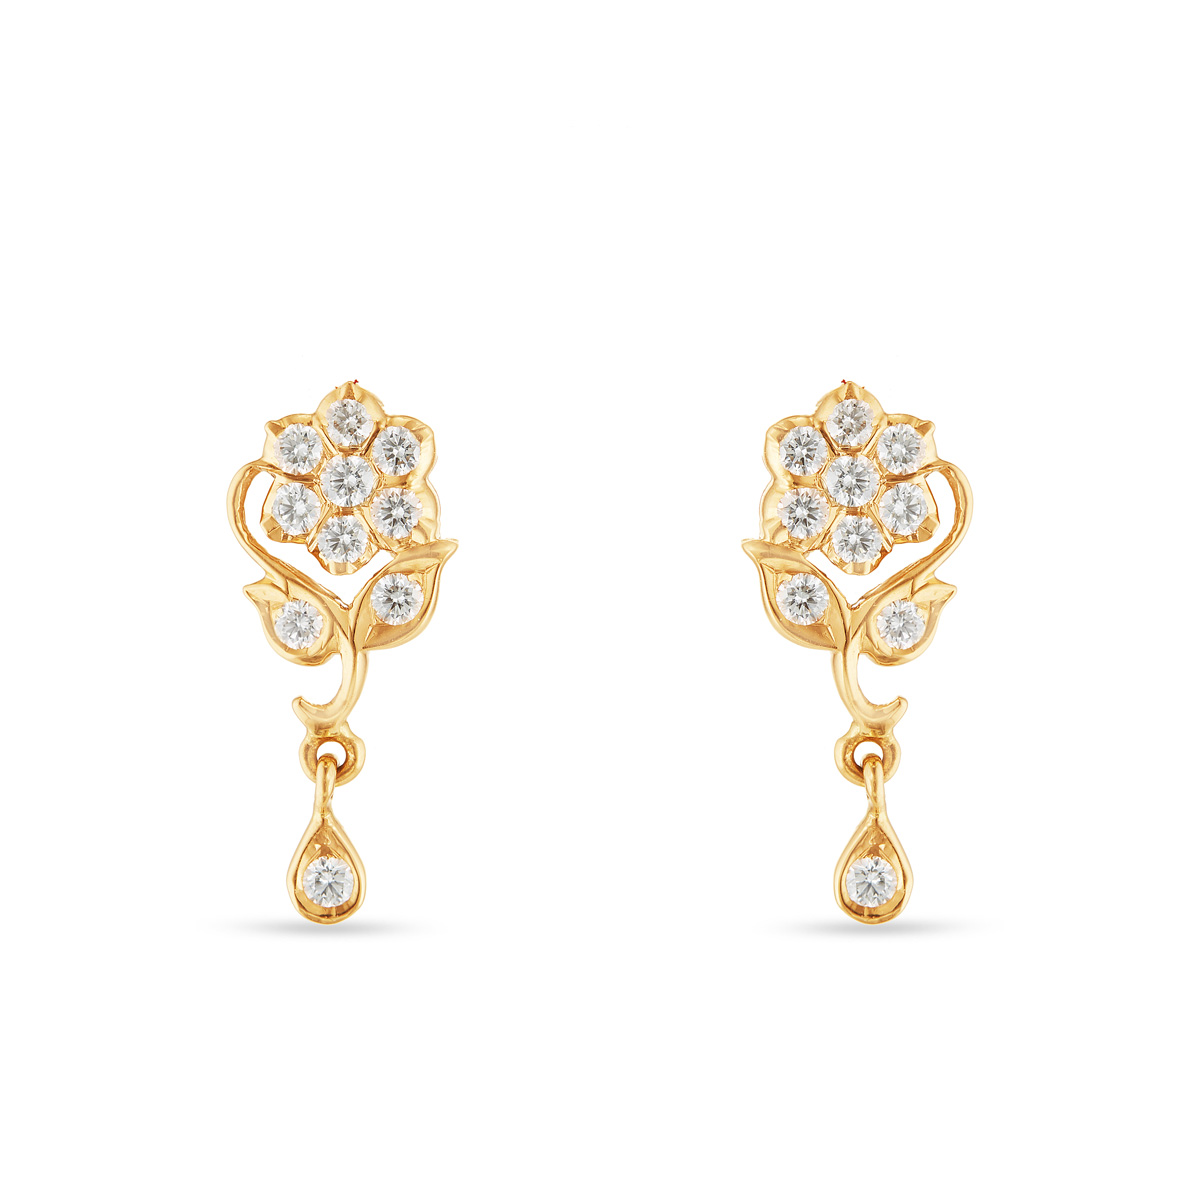 Sloane Sisyrin Drop Earrings